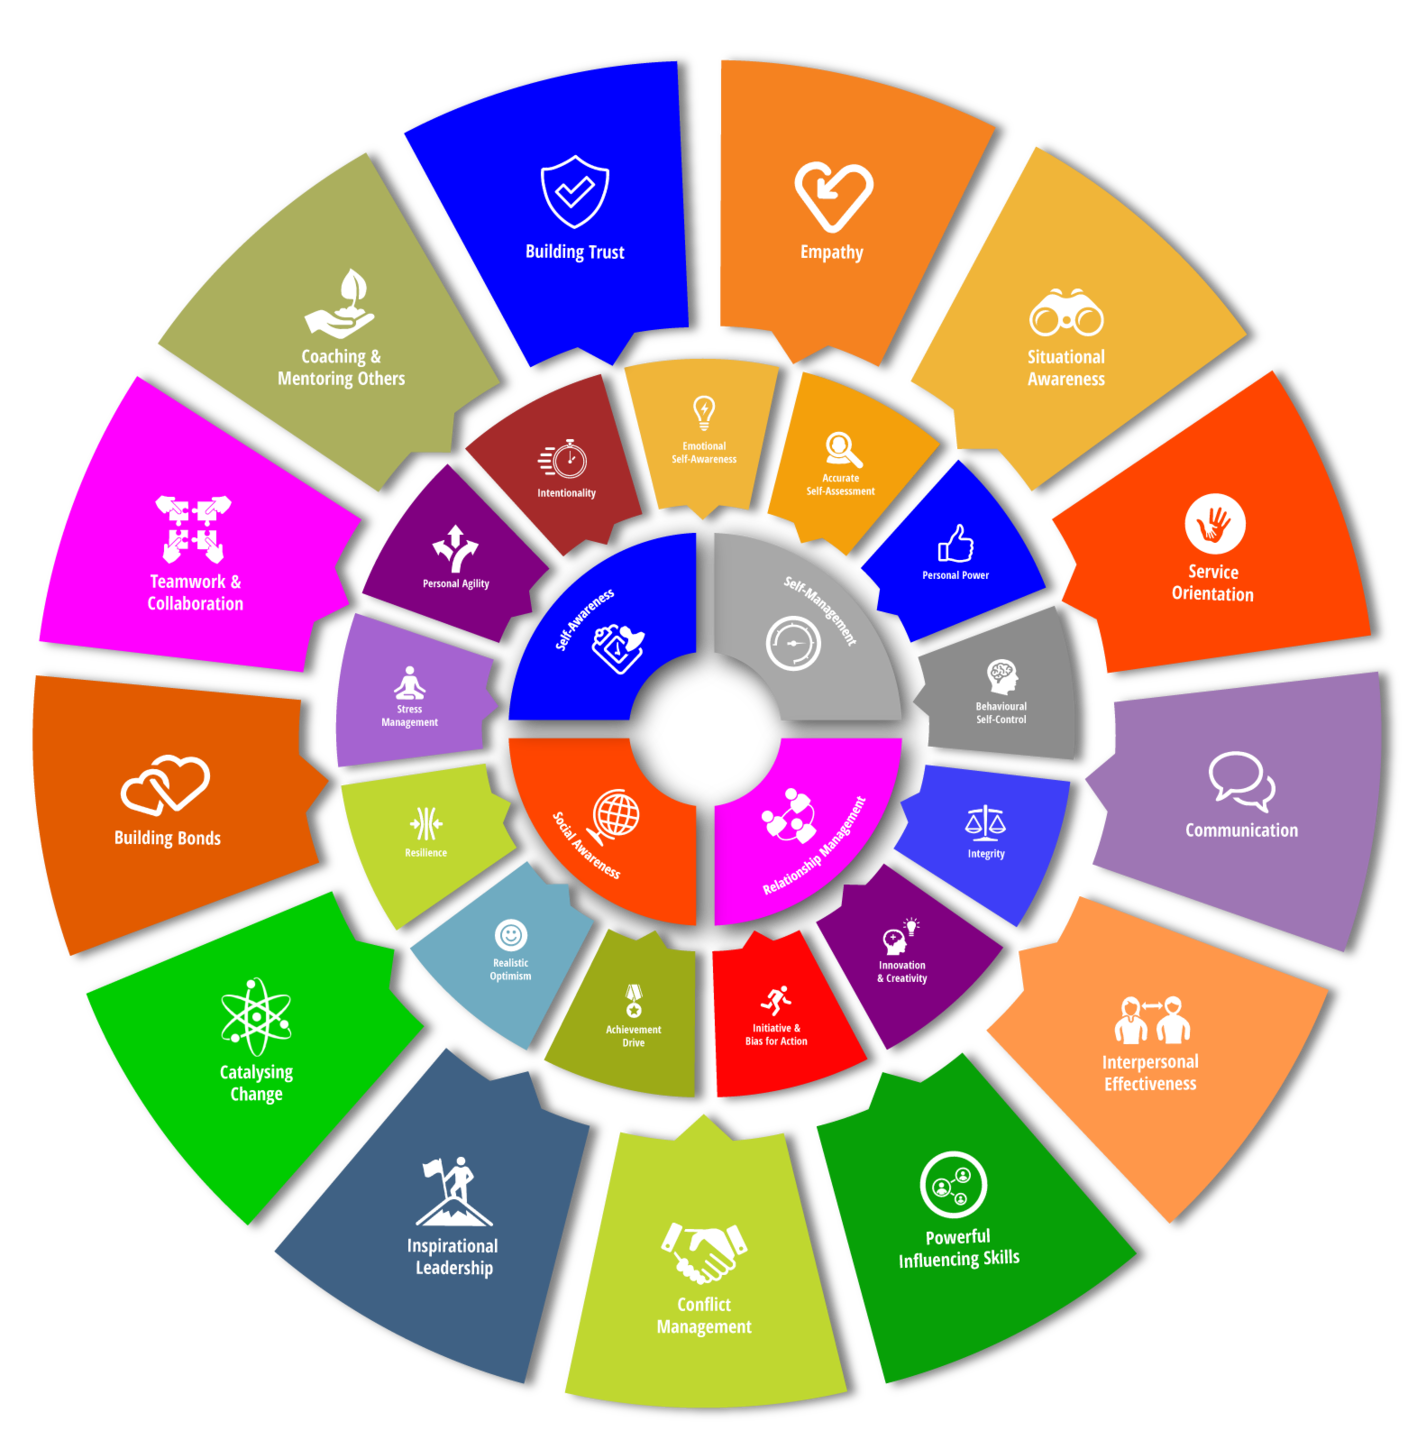 Vector wheel showing the 26 Distinct Competencies of Social and Emotional Intelligence.